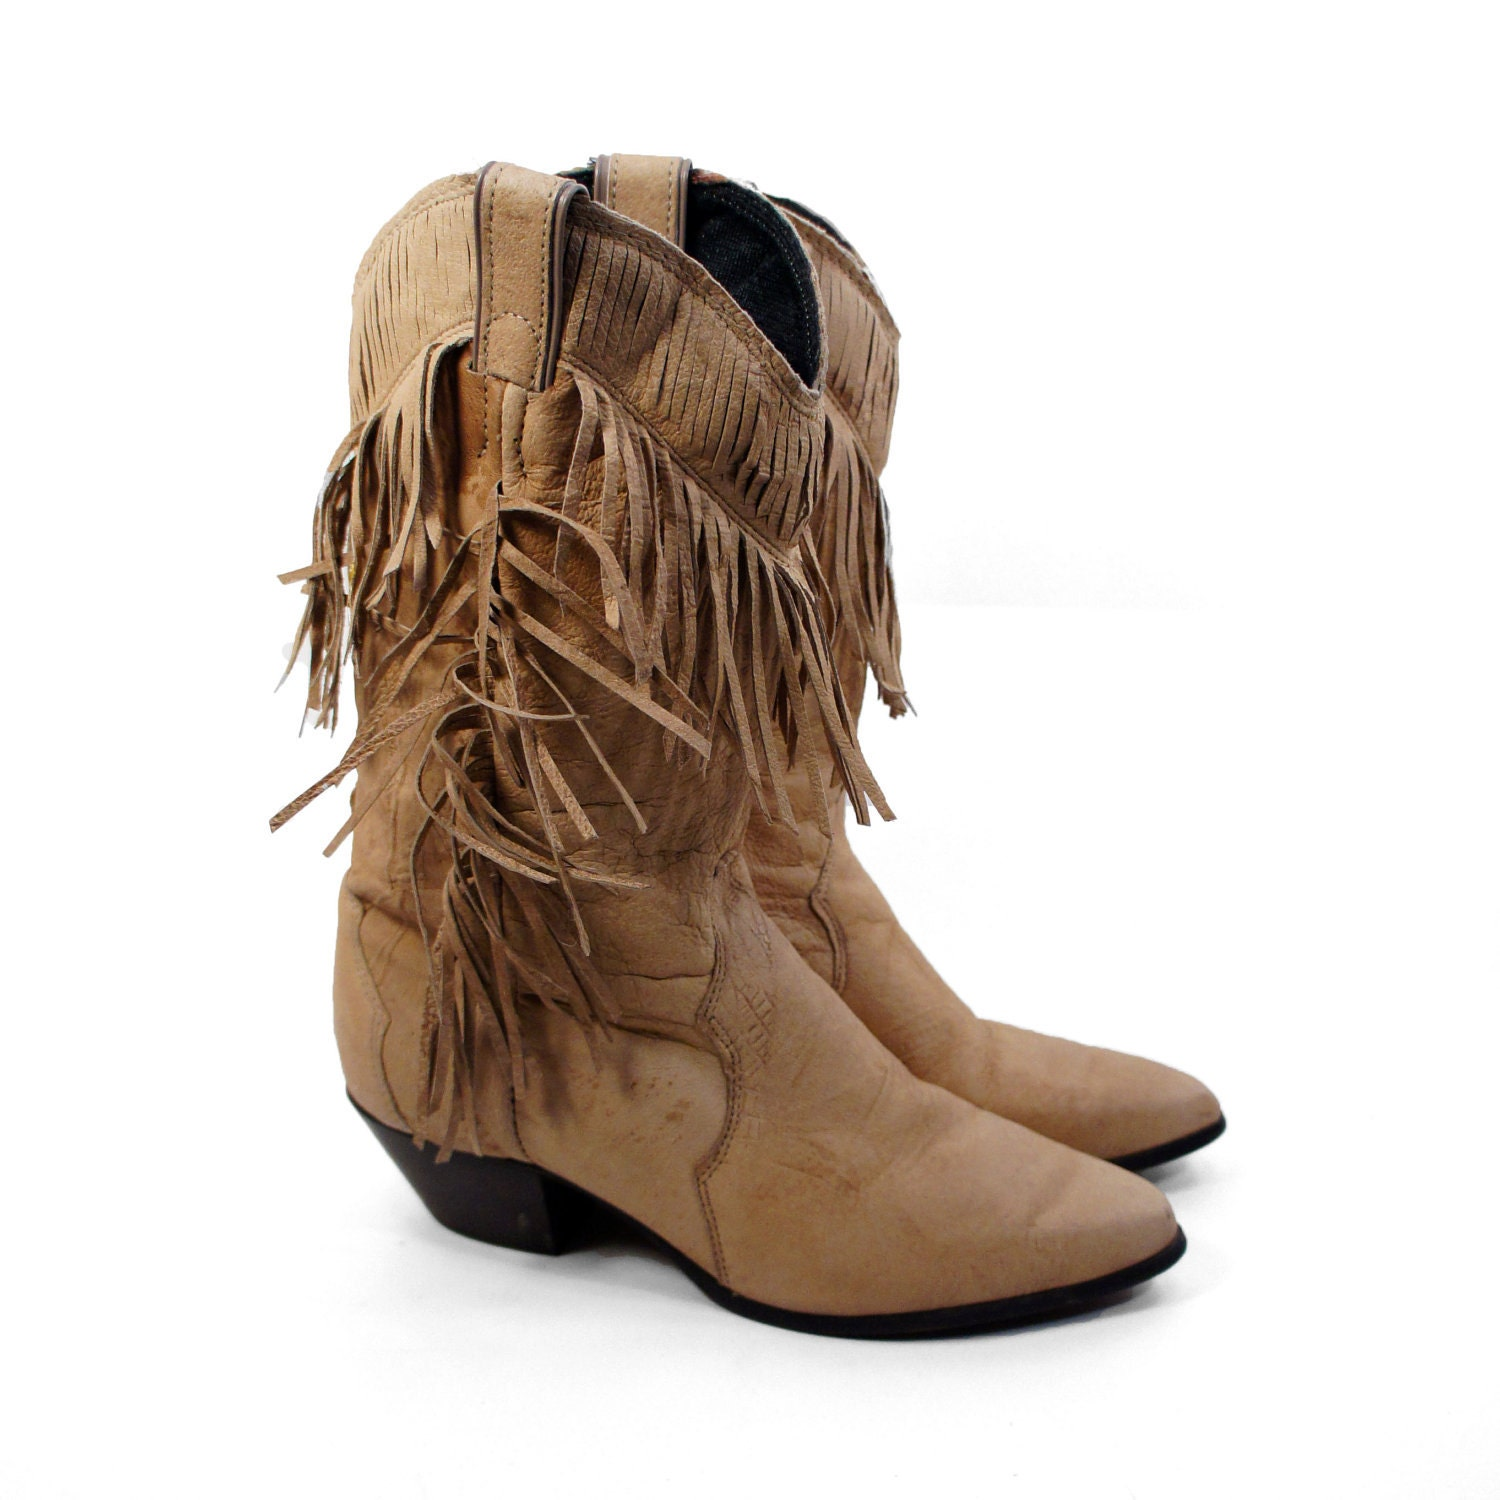 s fringe cowboy boots in tanned leather by by